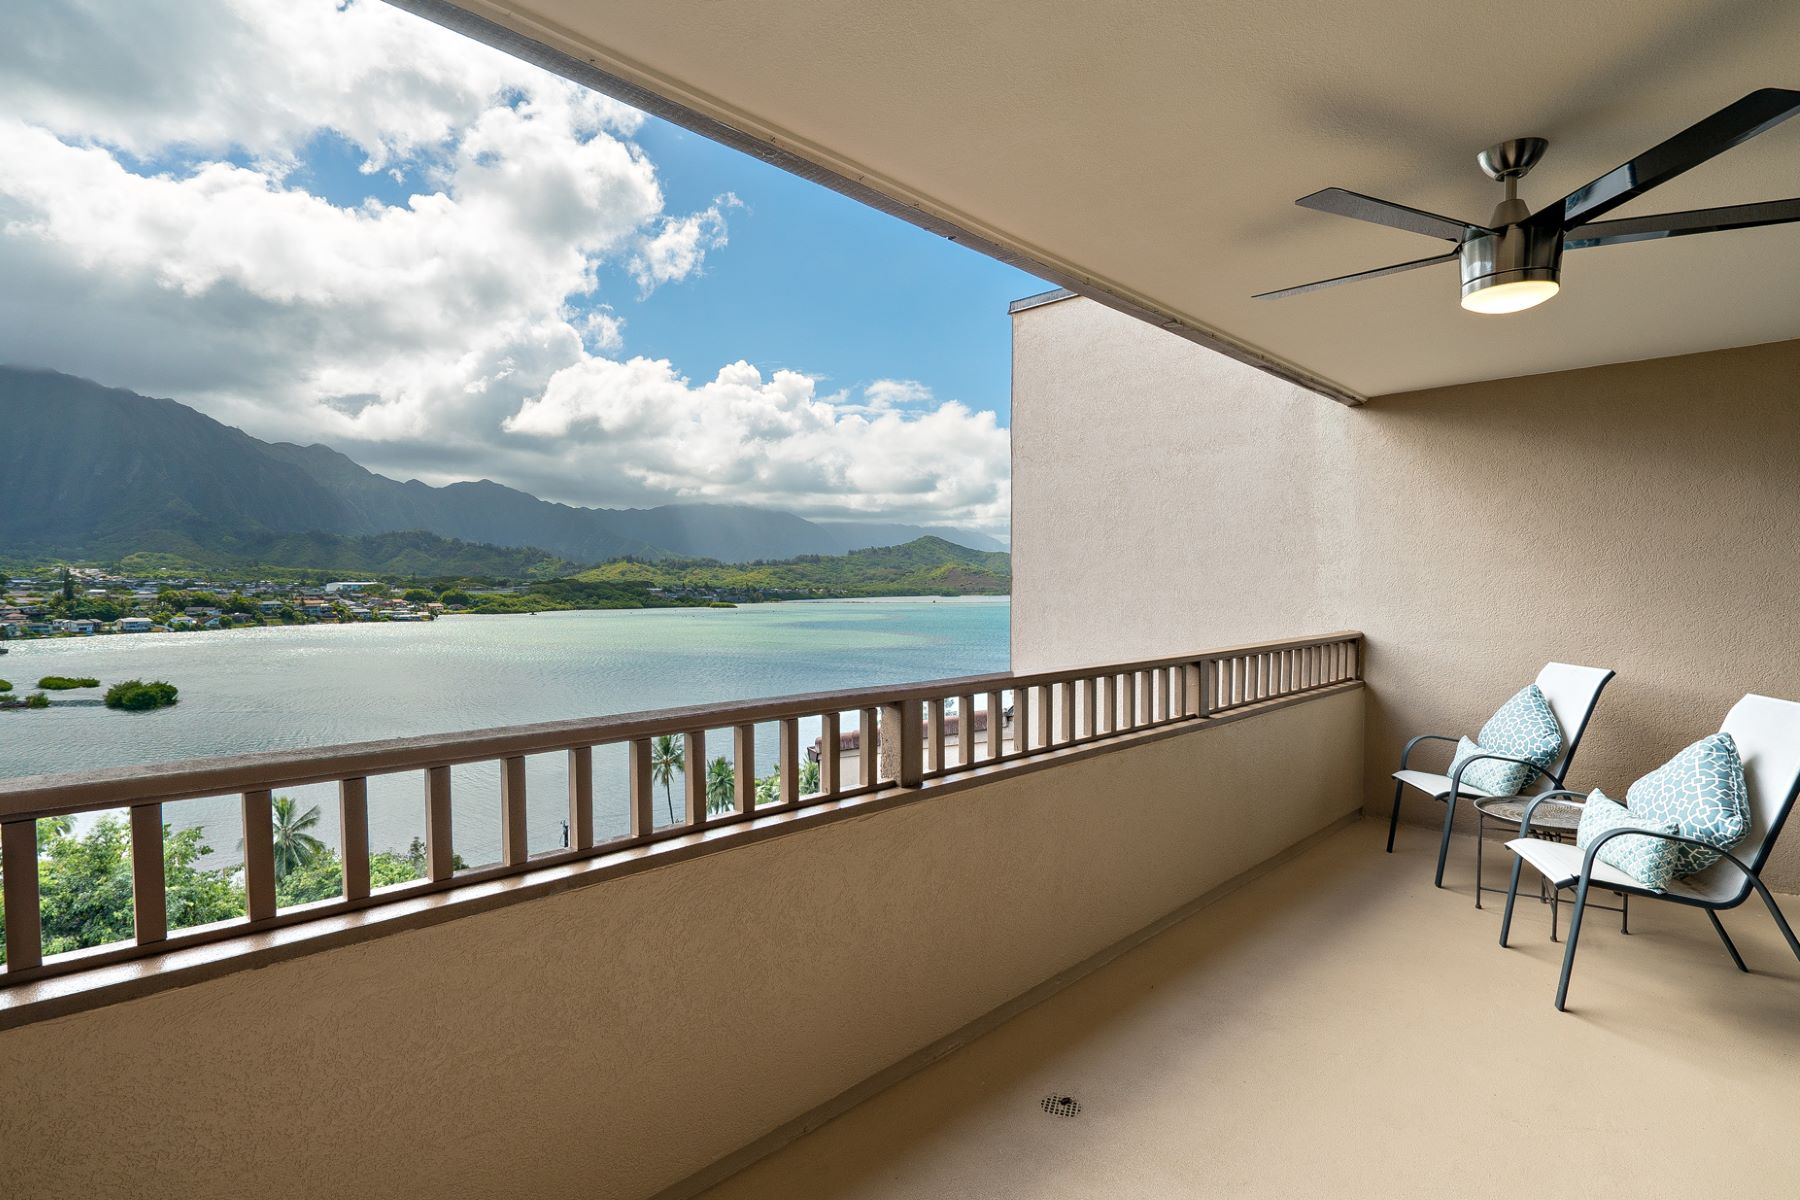 Townhouse for Sale at Dazzling Ocean Views 46-035 Konohiki Street #3862 Kaneohe, Hawaii 96744 United States